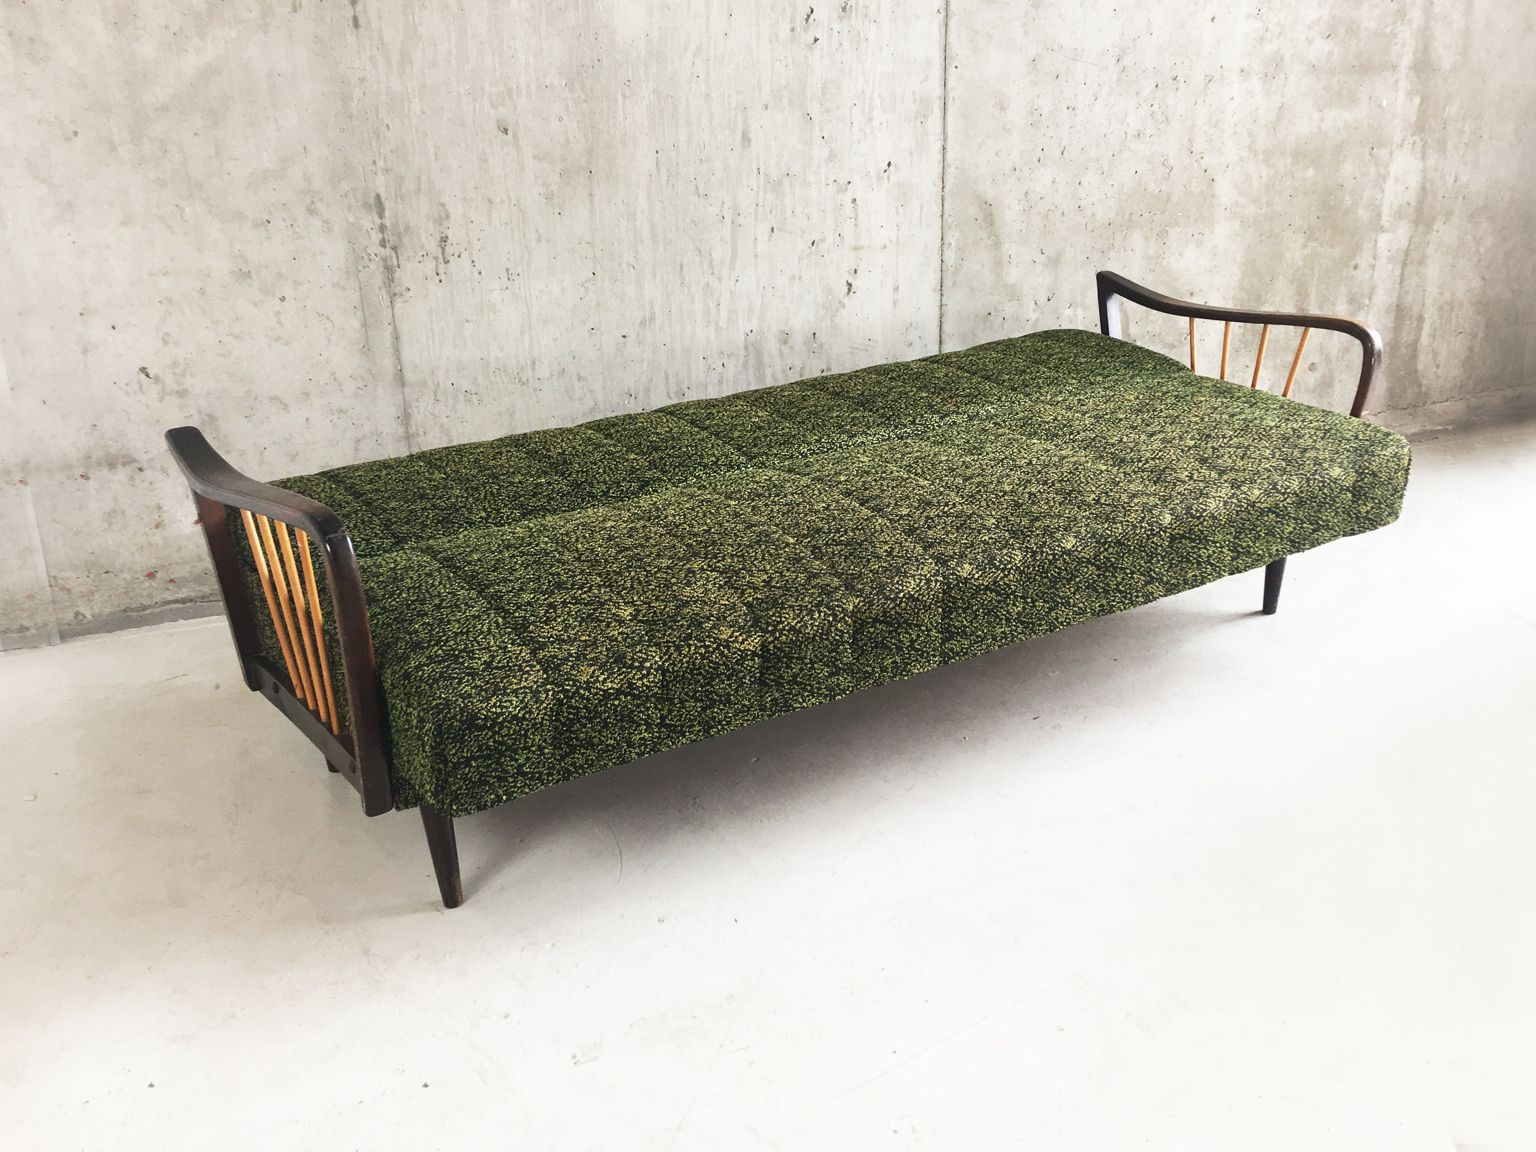 Sofa Retro 50er German Mid Century Sofa Bed With Original Green Upholstery Layer